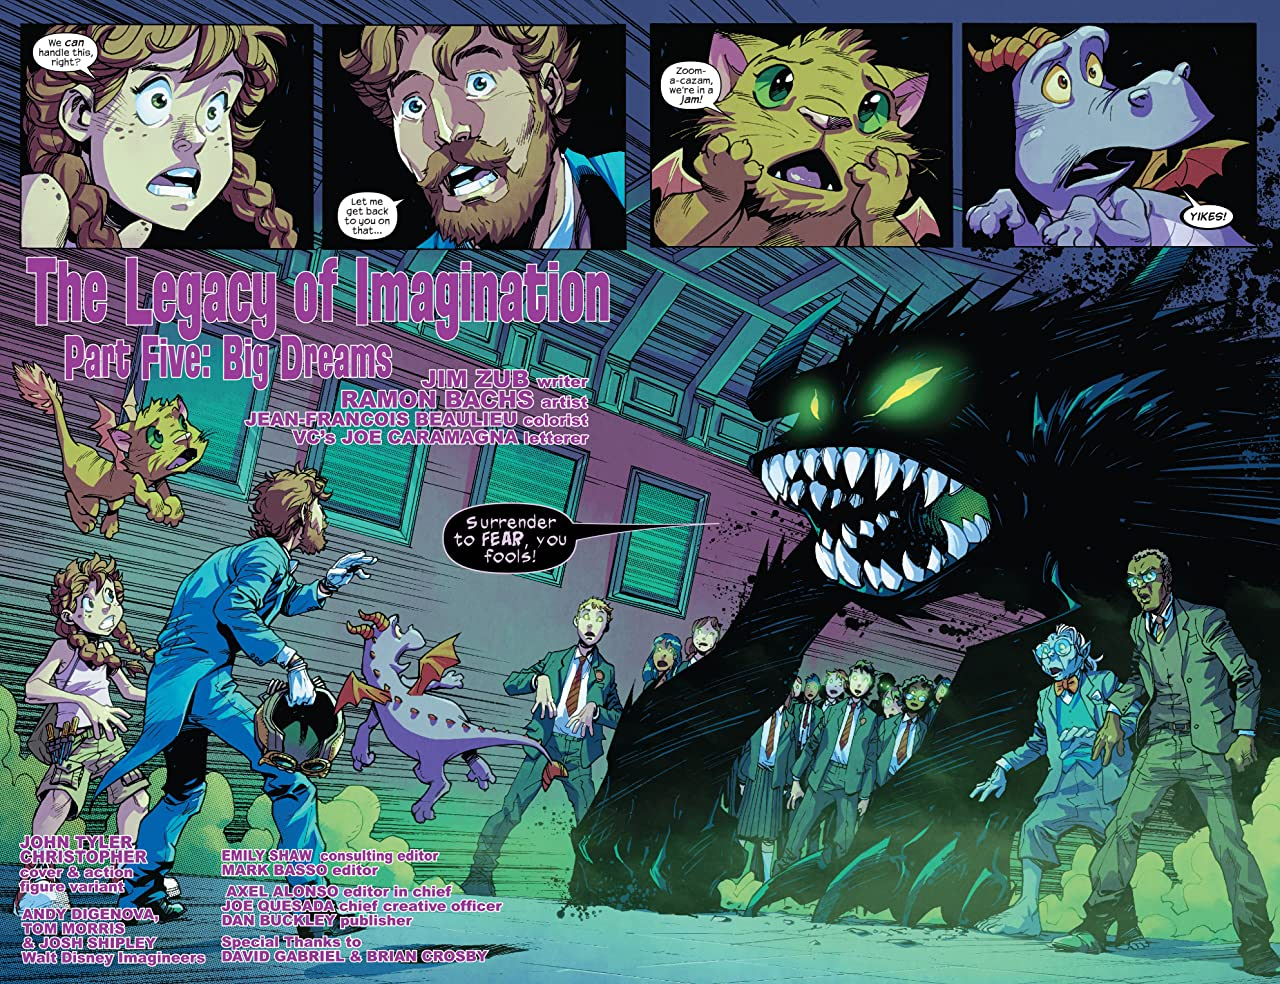 Figment 2 #5 (of 5)